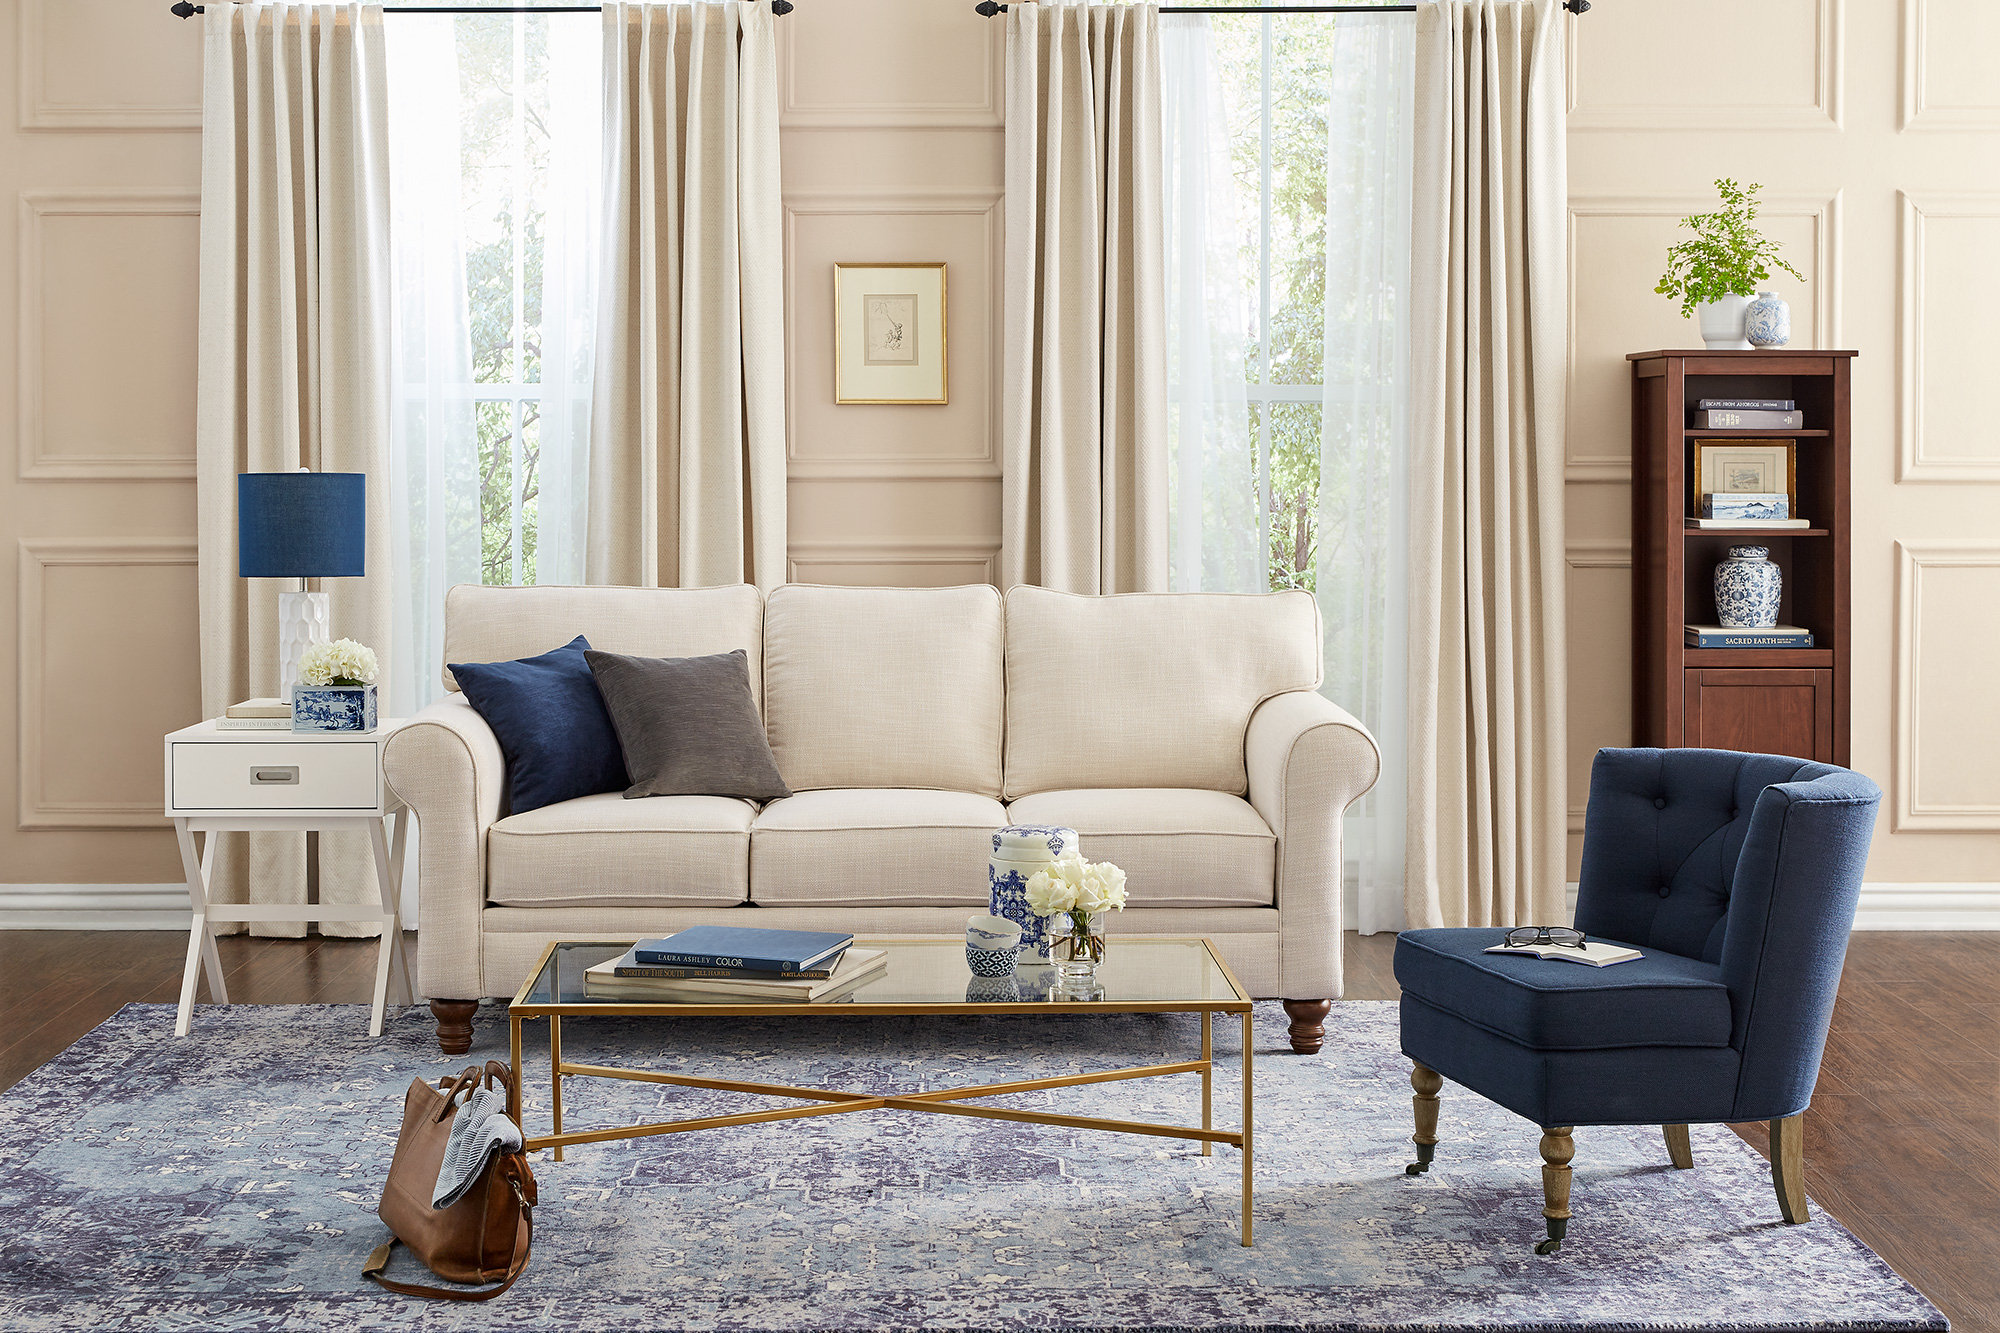 can miss gabby ella round coffee table ravenna home living parquet accent target launches its own furnishings collection take peek the affordable items apartment size furniture